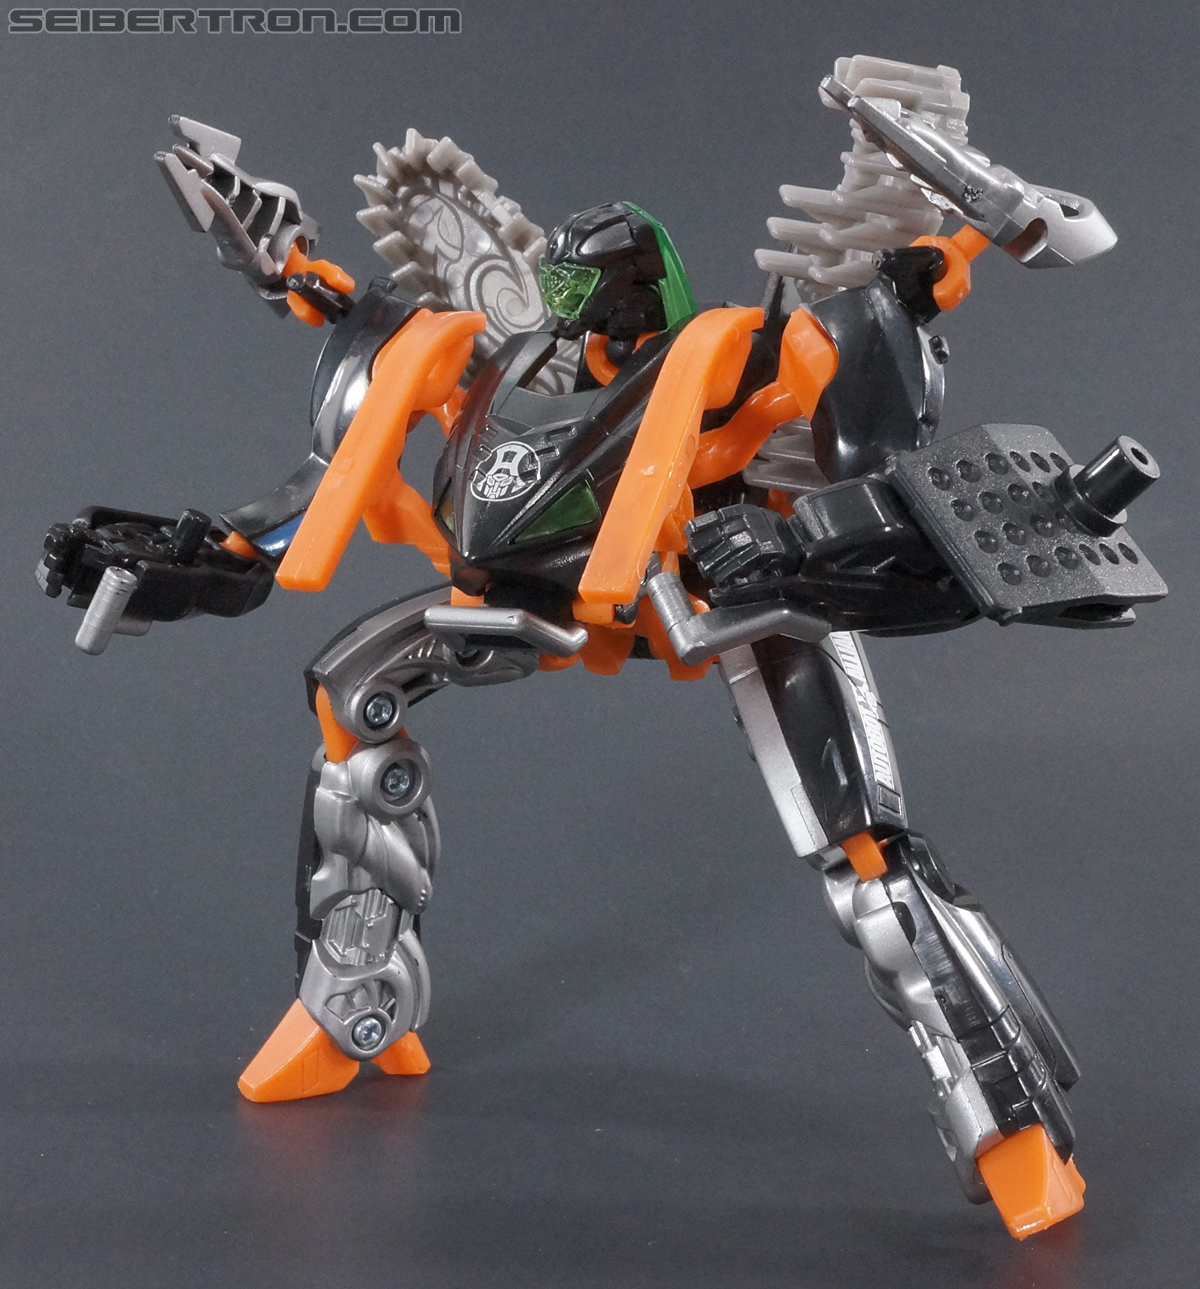 Transformers Dark of the Moon Icepick (Flash Freeze Assault) (Image #94 of 123)